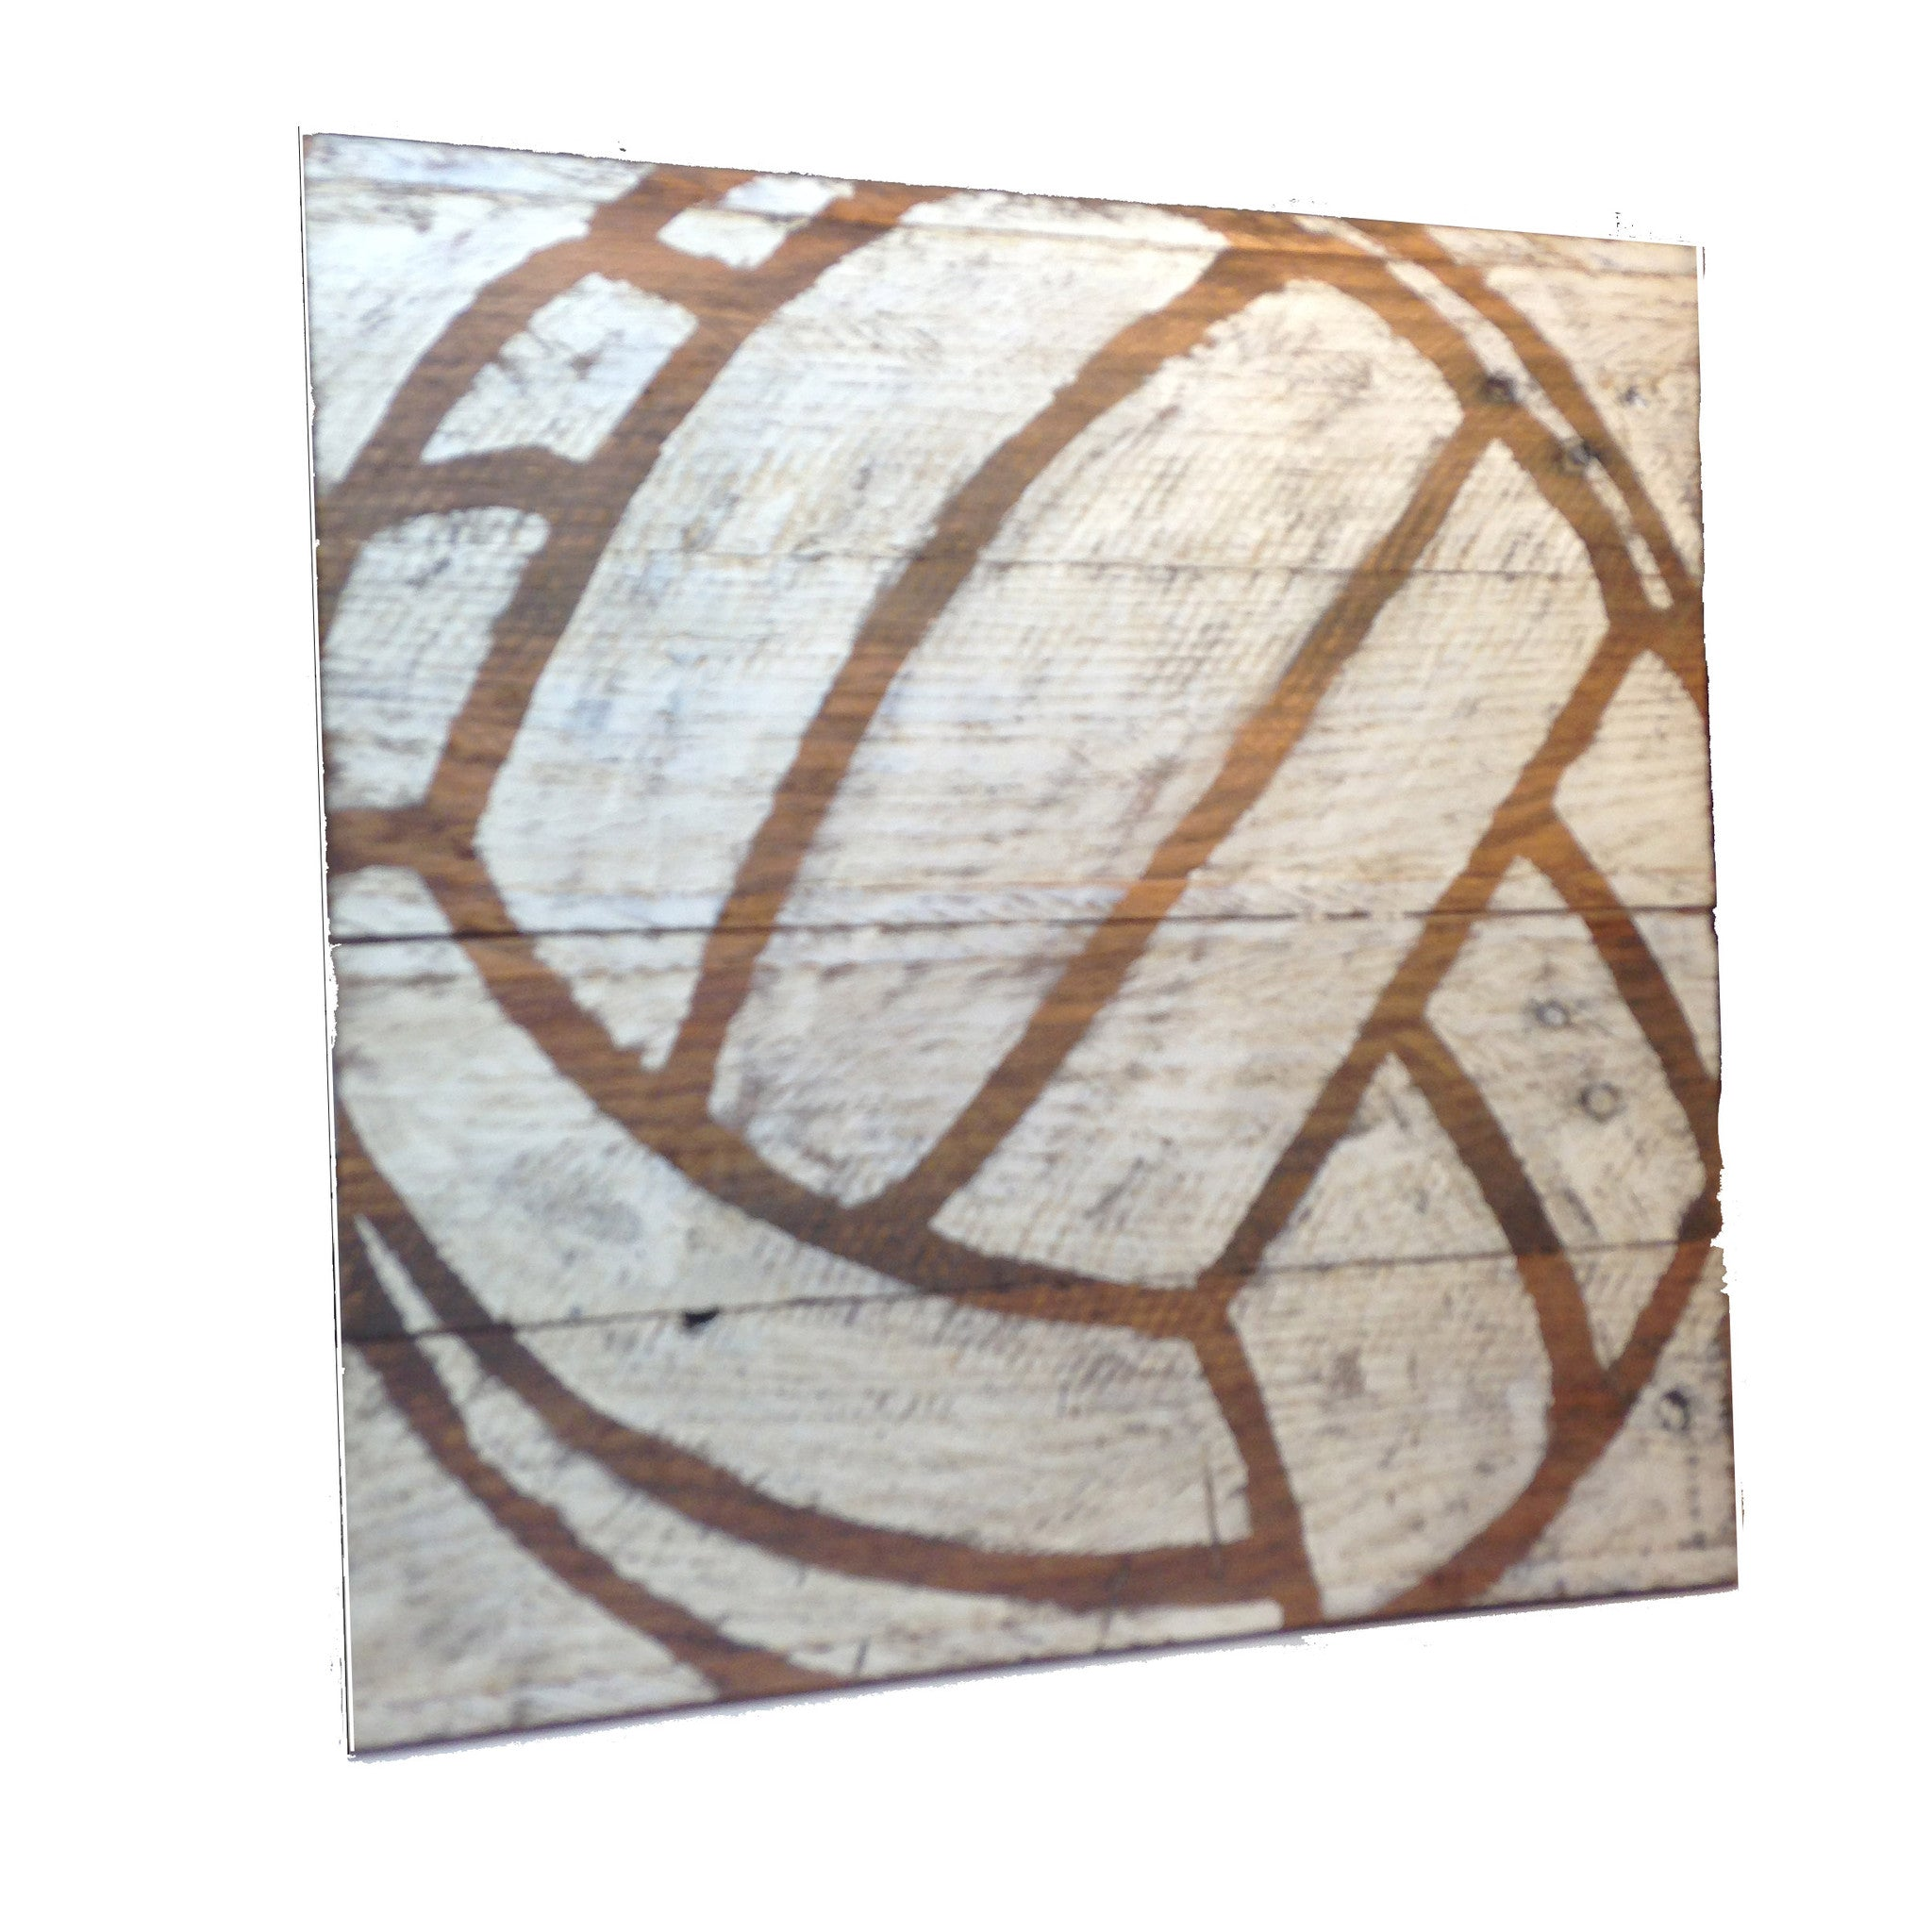 Reclaimed Wood Wall Art Part - 46: Reclaimed Wood Wall Art: Volleyball - Another Rinse